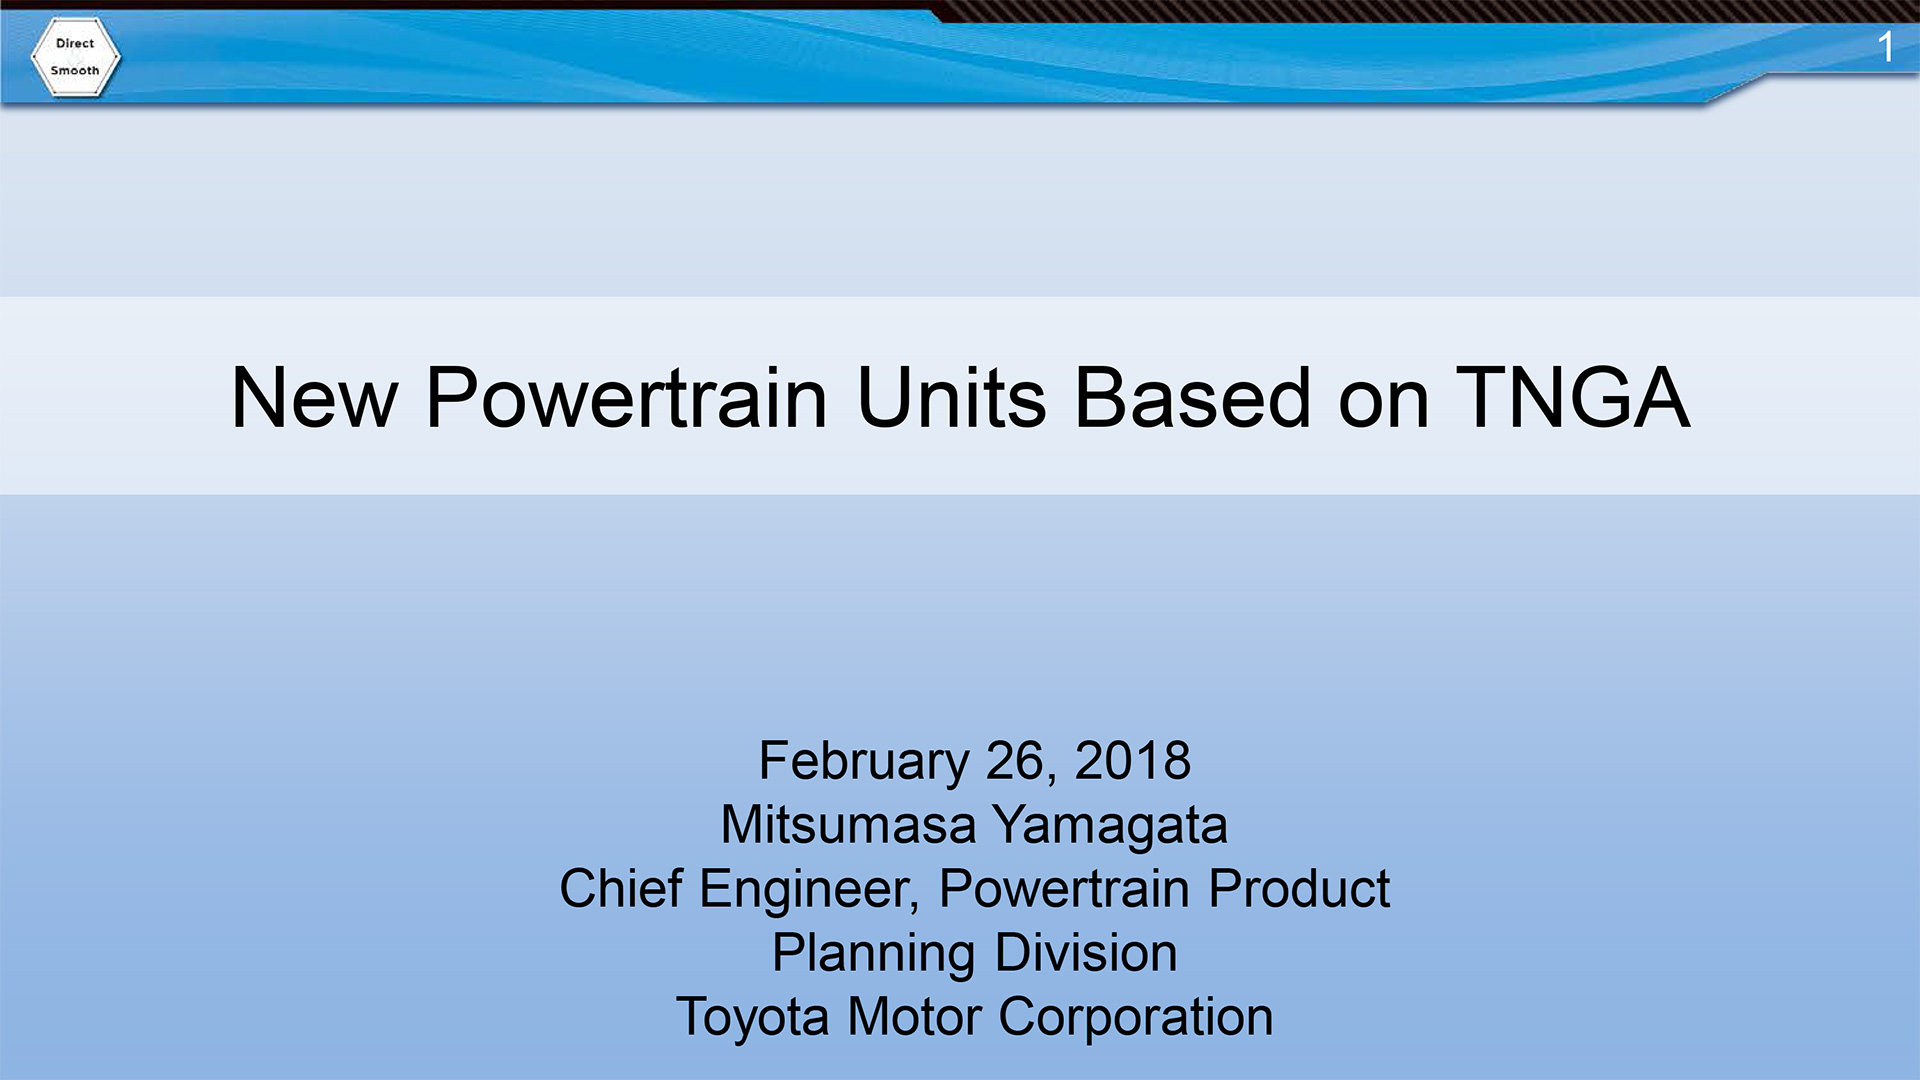 New Powertrain Units Based on TNGA